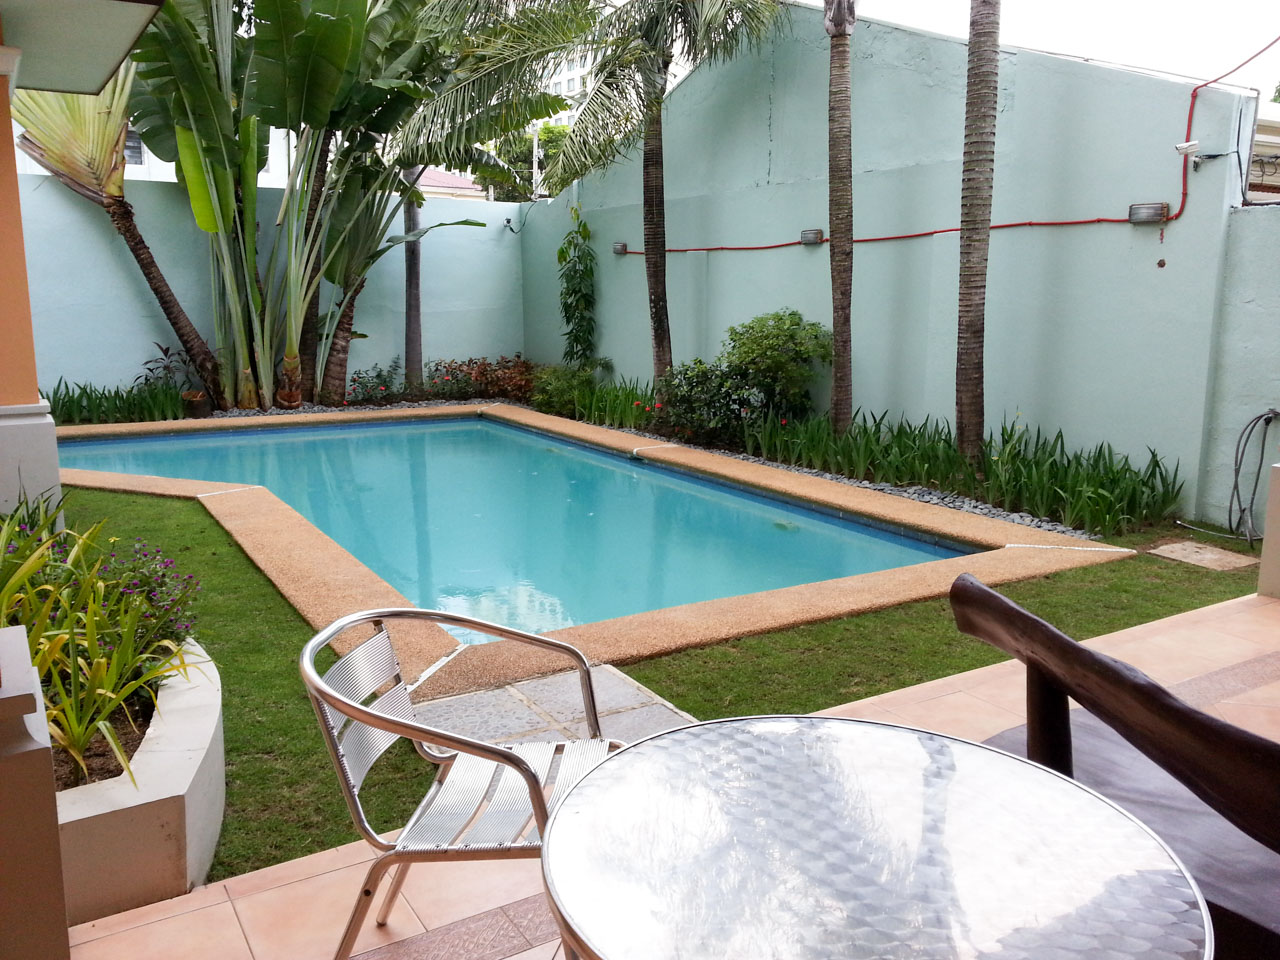 4 bedroom house for rent in cebu cebu grand realty - Houses with swimming pools for rent ...